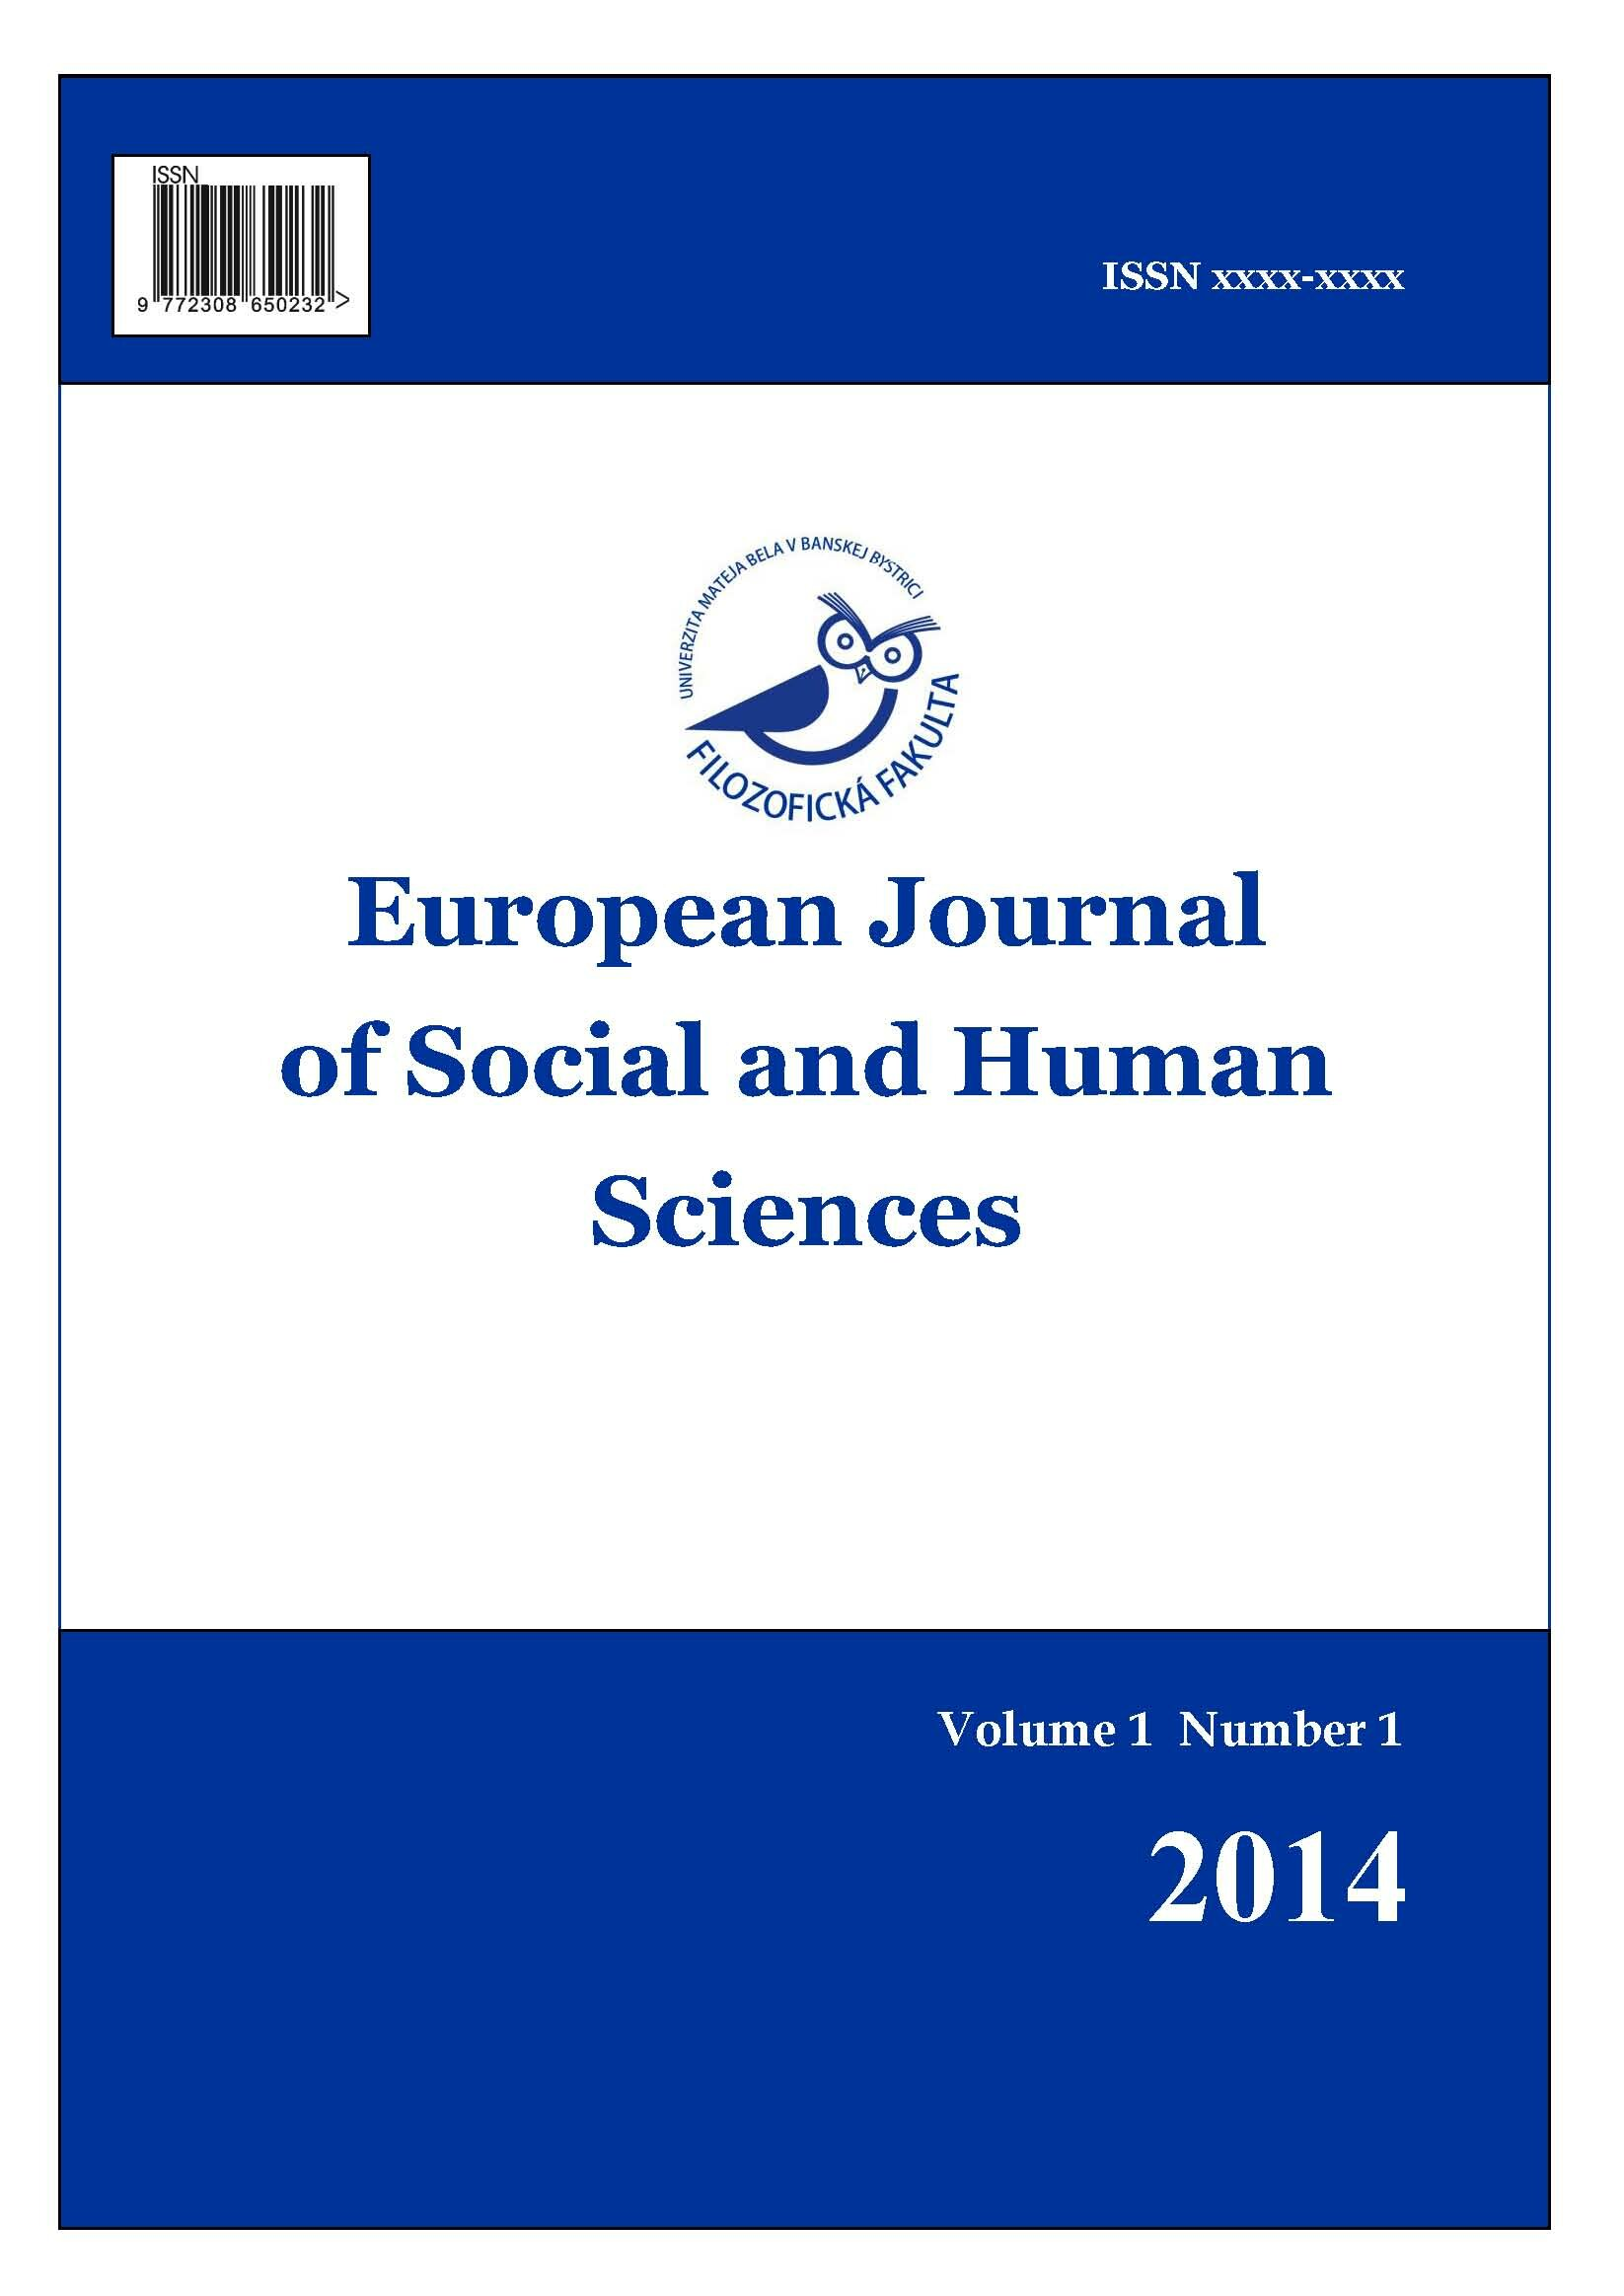 European Journal Of Social And Human Sciences